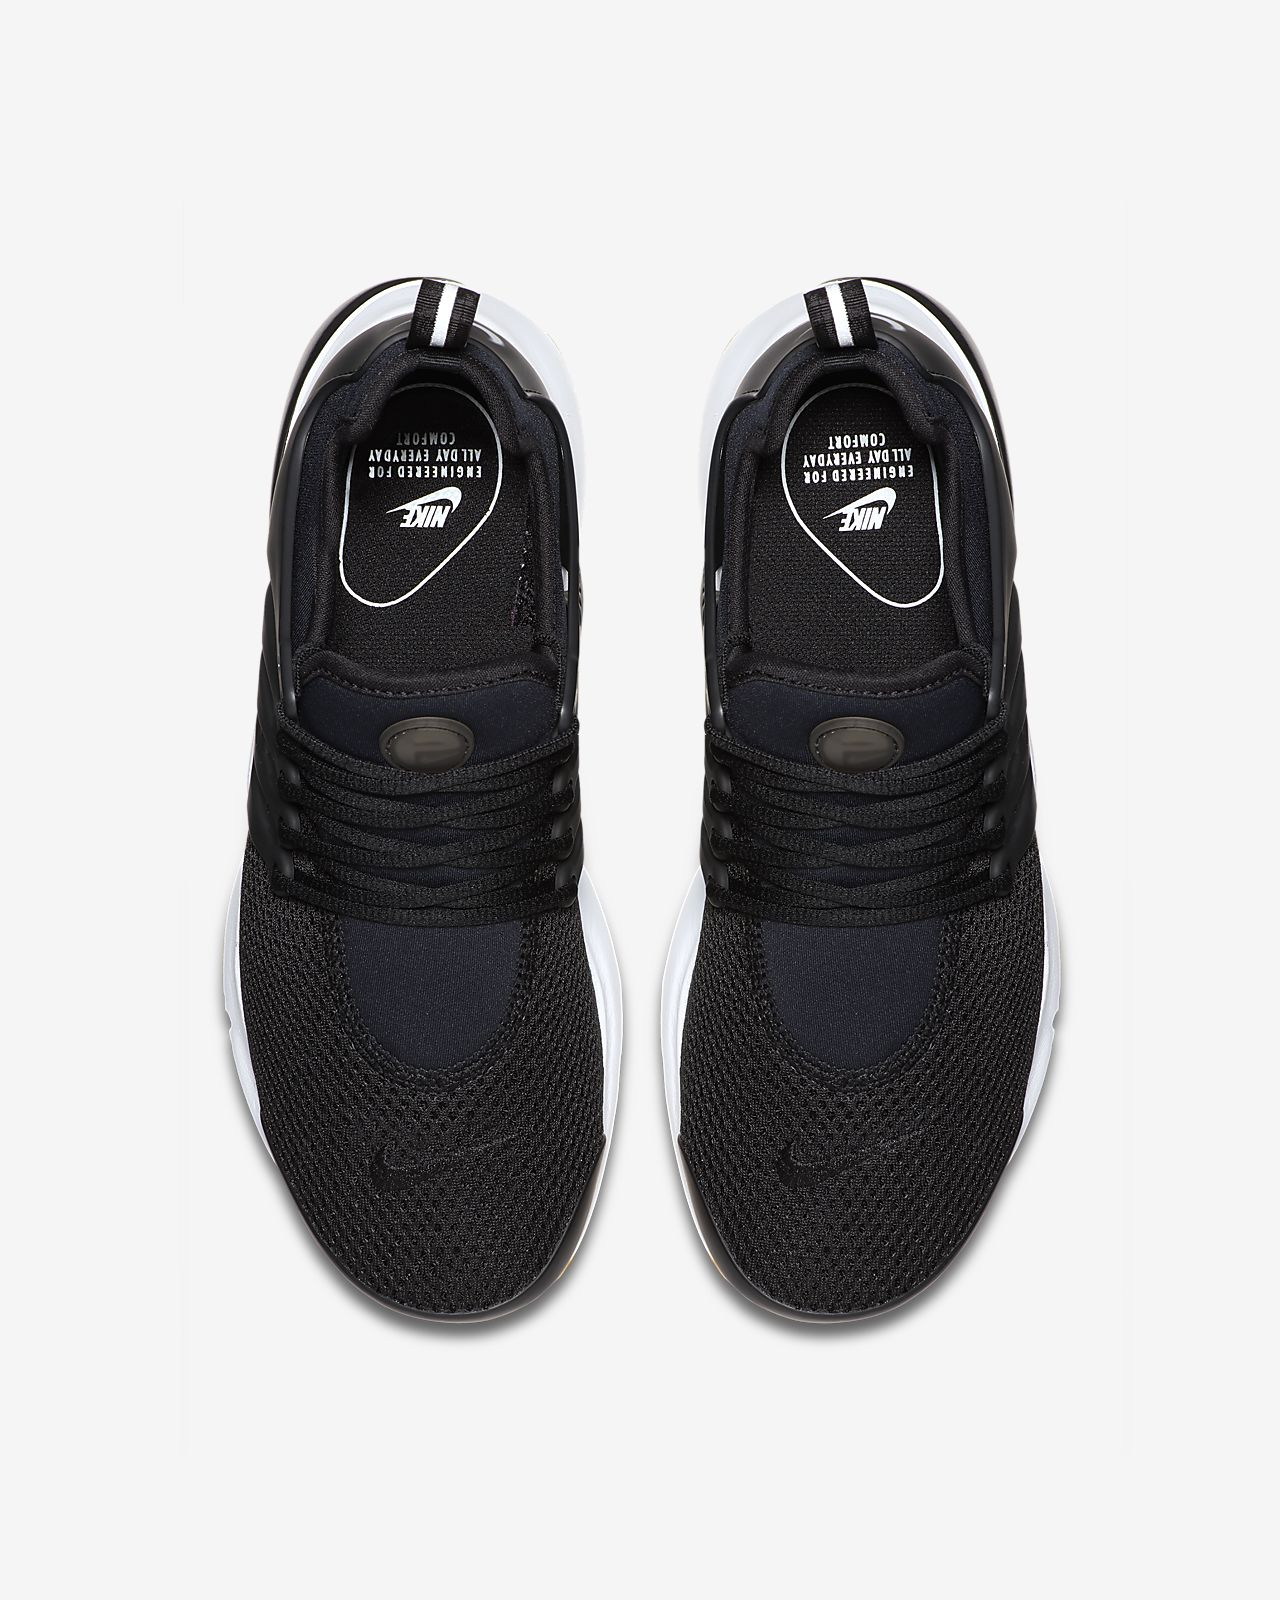 505f24741250 Nike Air Presto Women s Shoe. Nike.com